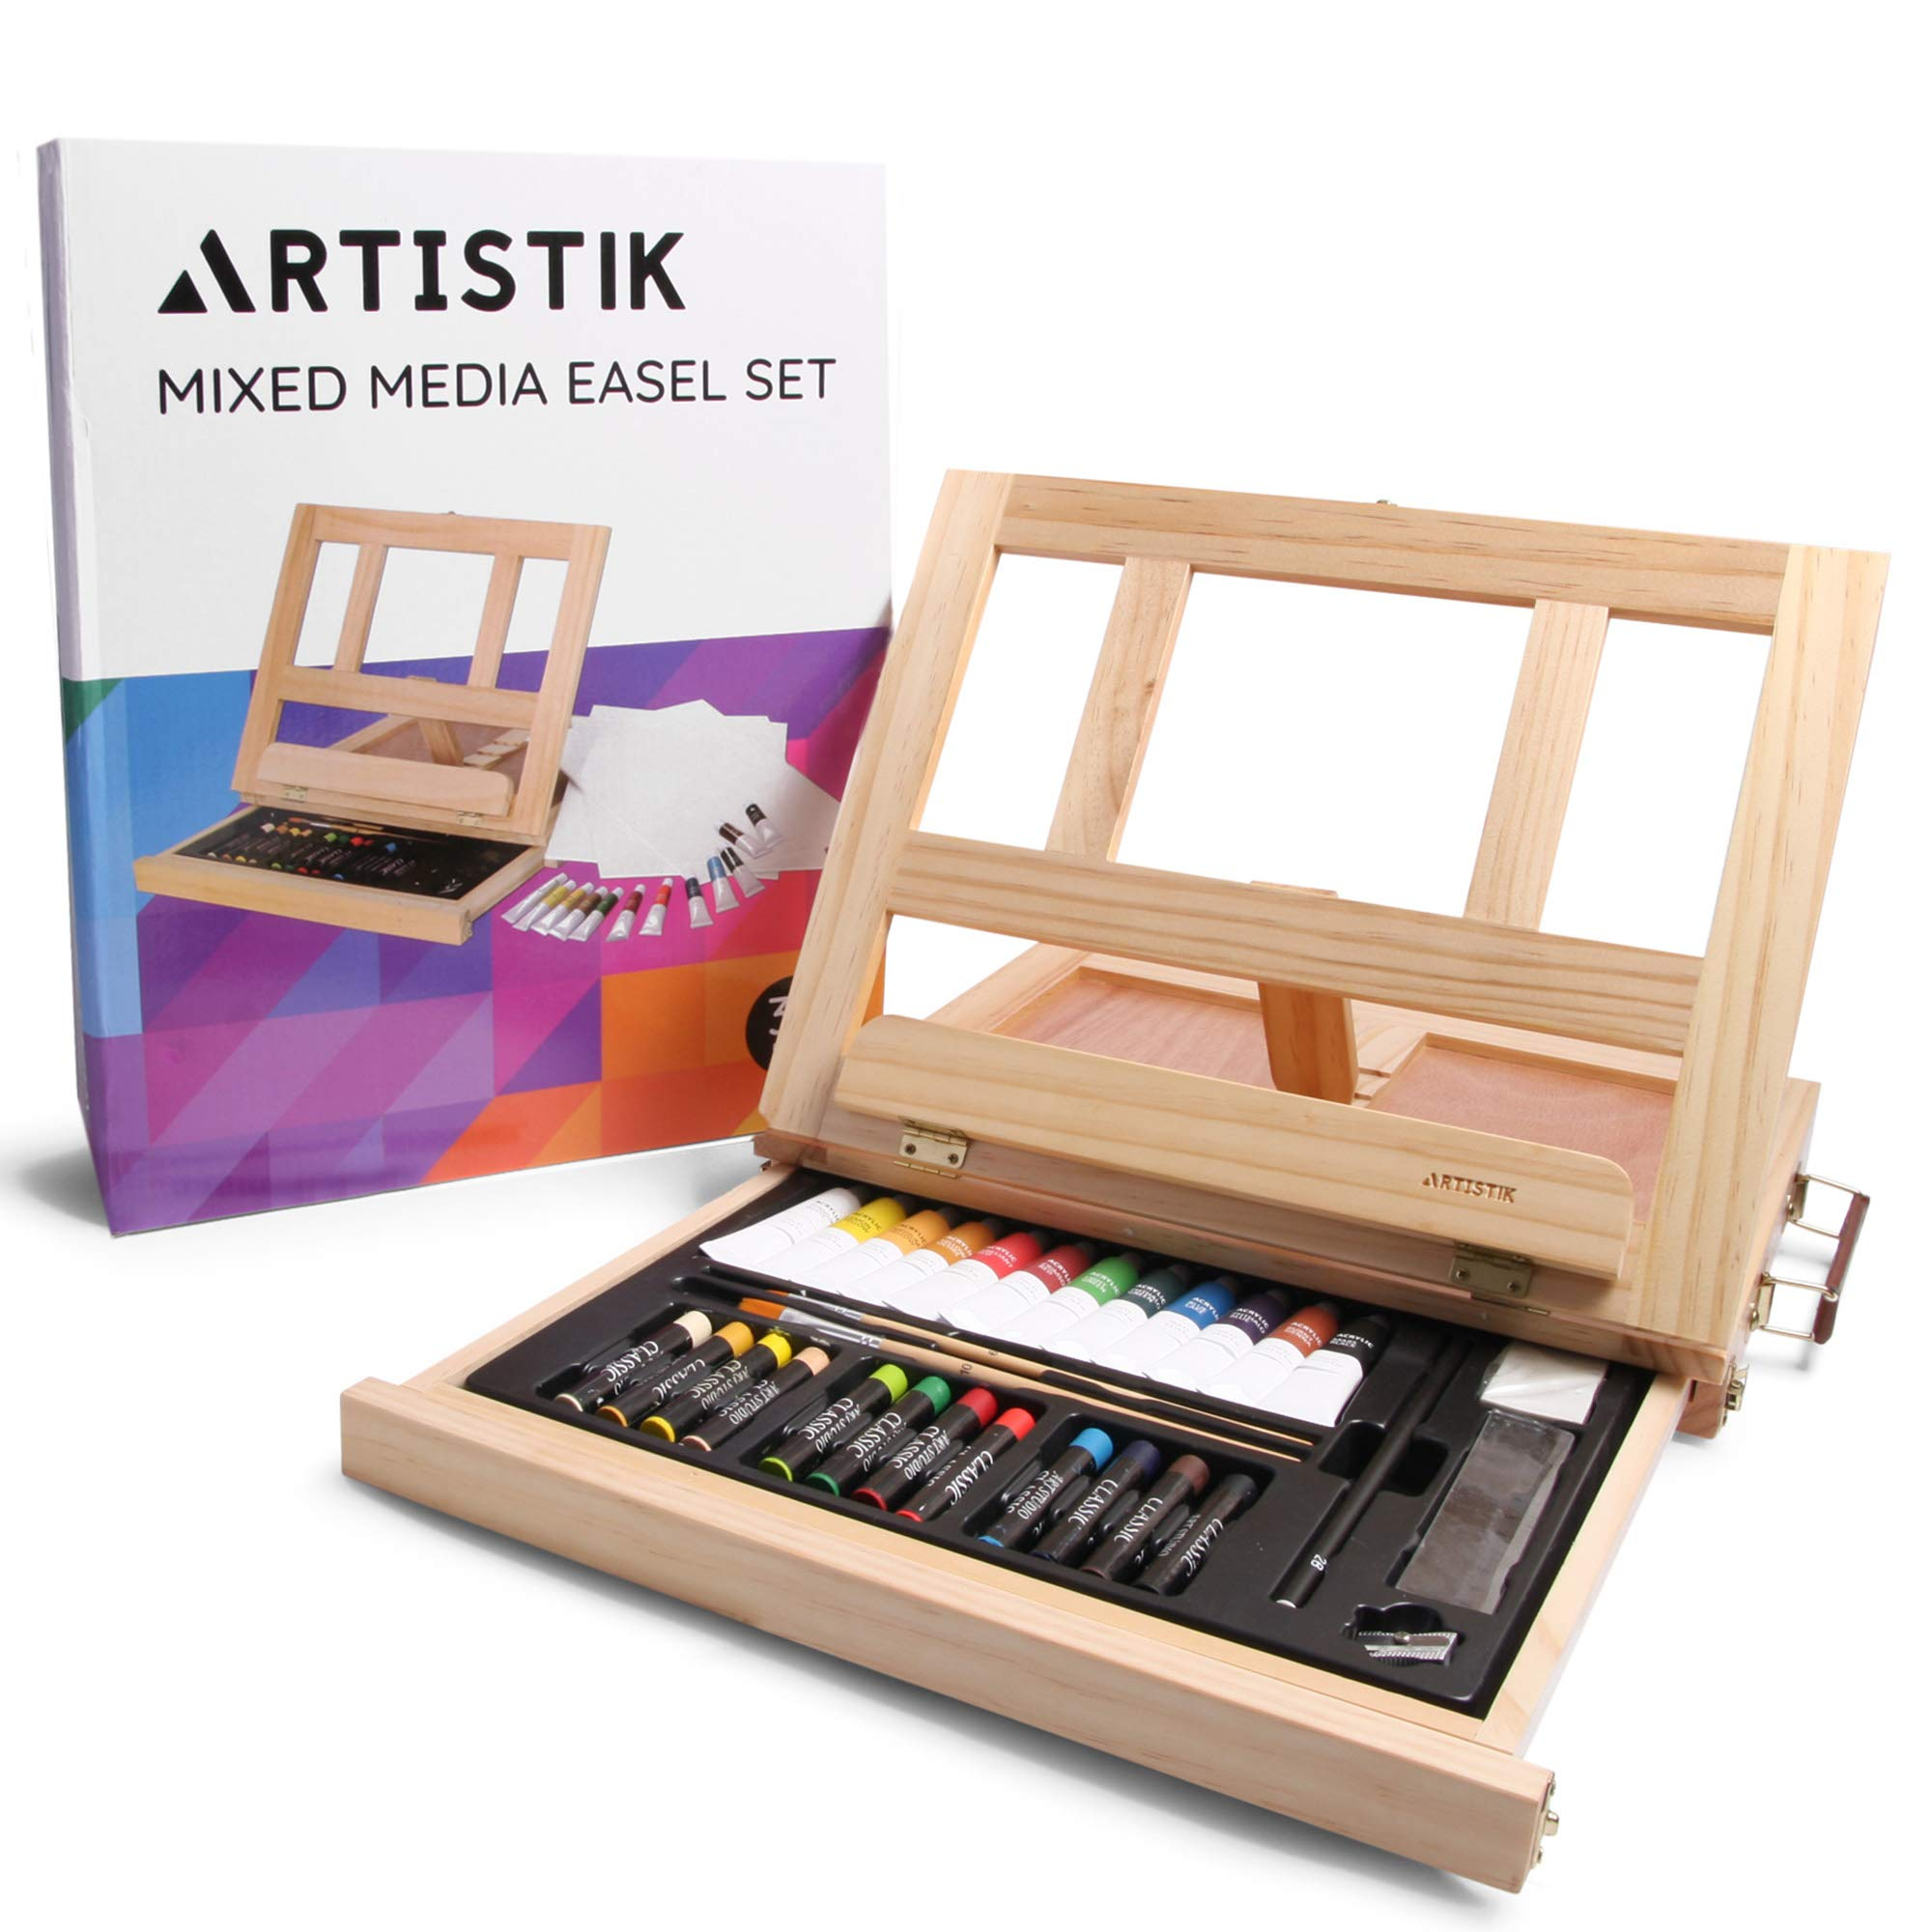 Mixed Media Art Set - Complete Easel Painting Kit with Wood Table Desk Top Easel Box Includes Acrylic Paints, 3 Canvas Boards, Pastels, Desktop Art Supplies Gift for Beginner Artists, Kids, Adults by Artistik